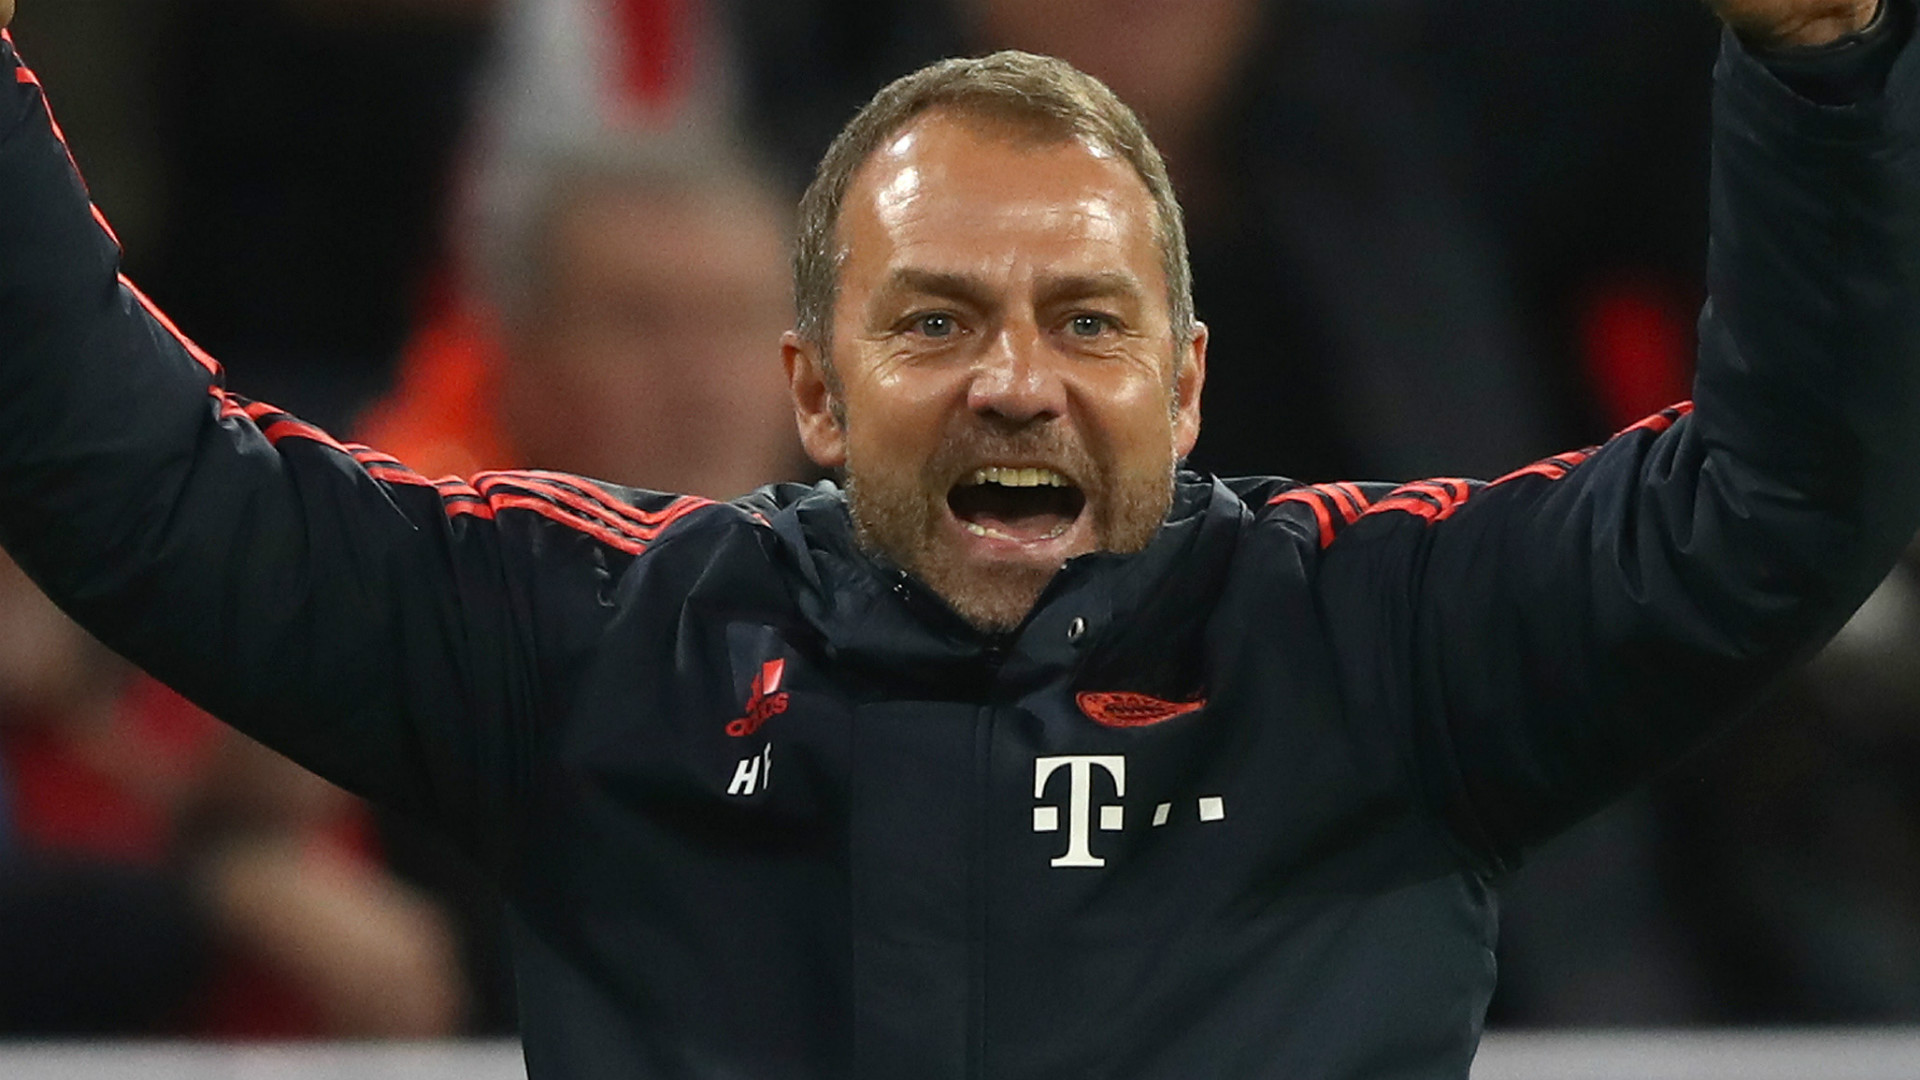 Bayern confirm interim coach Flick to stay on as manager